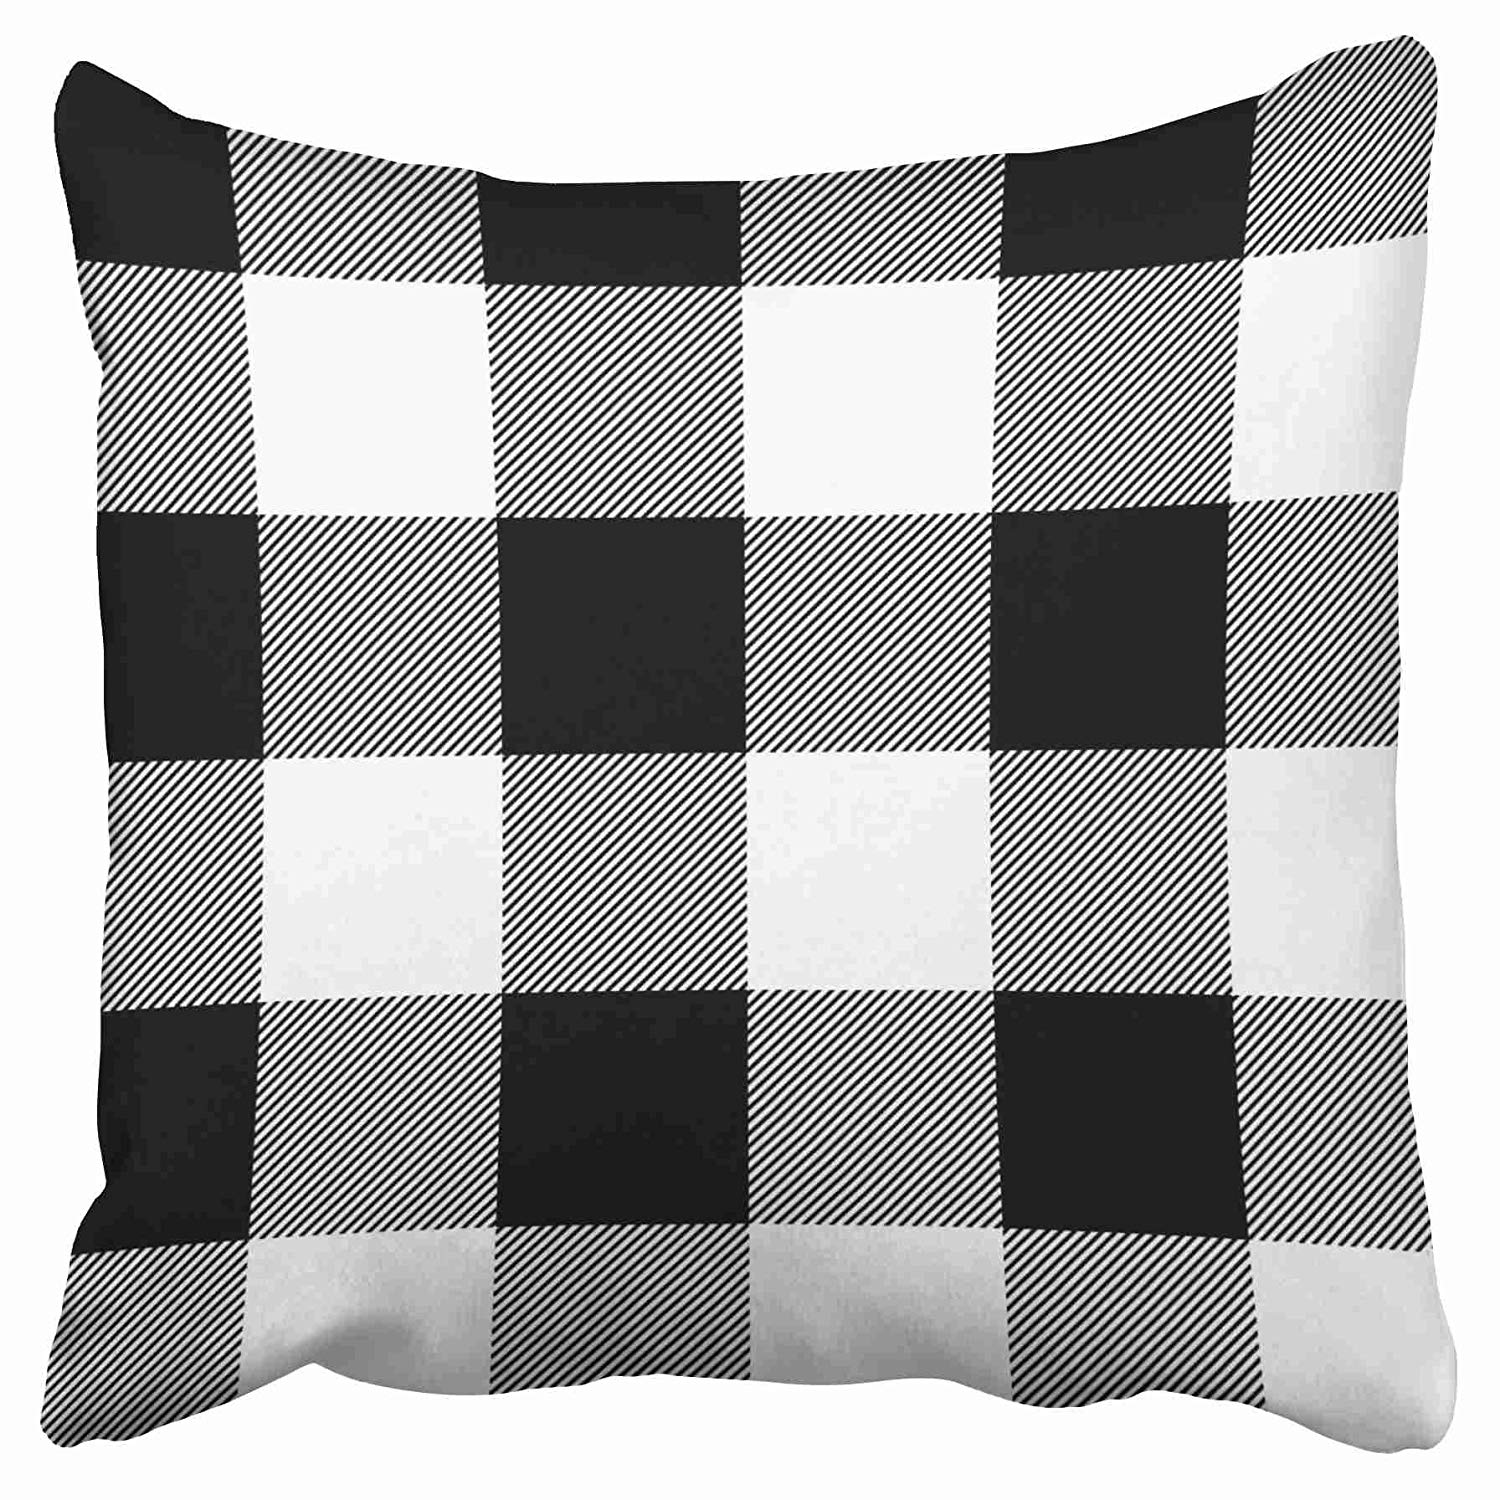 Throw Pillow Covers Rustic Black And White Buffalo Check Plaid Outdoor Double Sided Pillowcase Cushion Case Protectors Inches